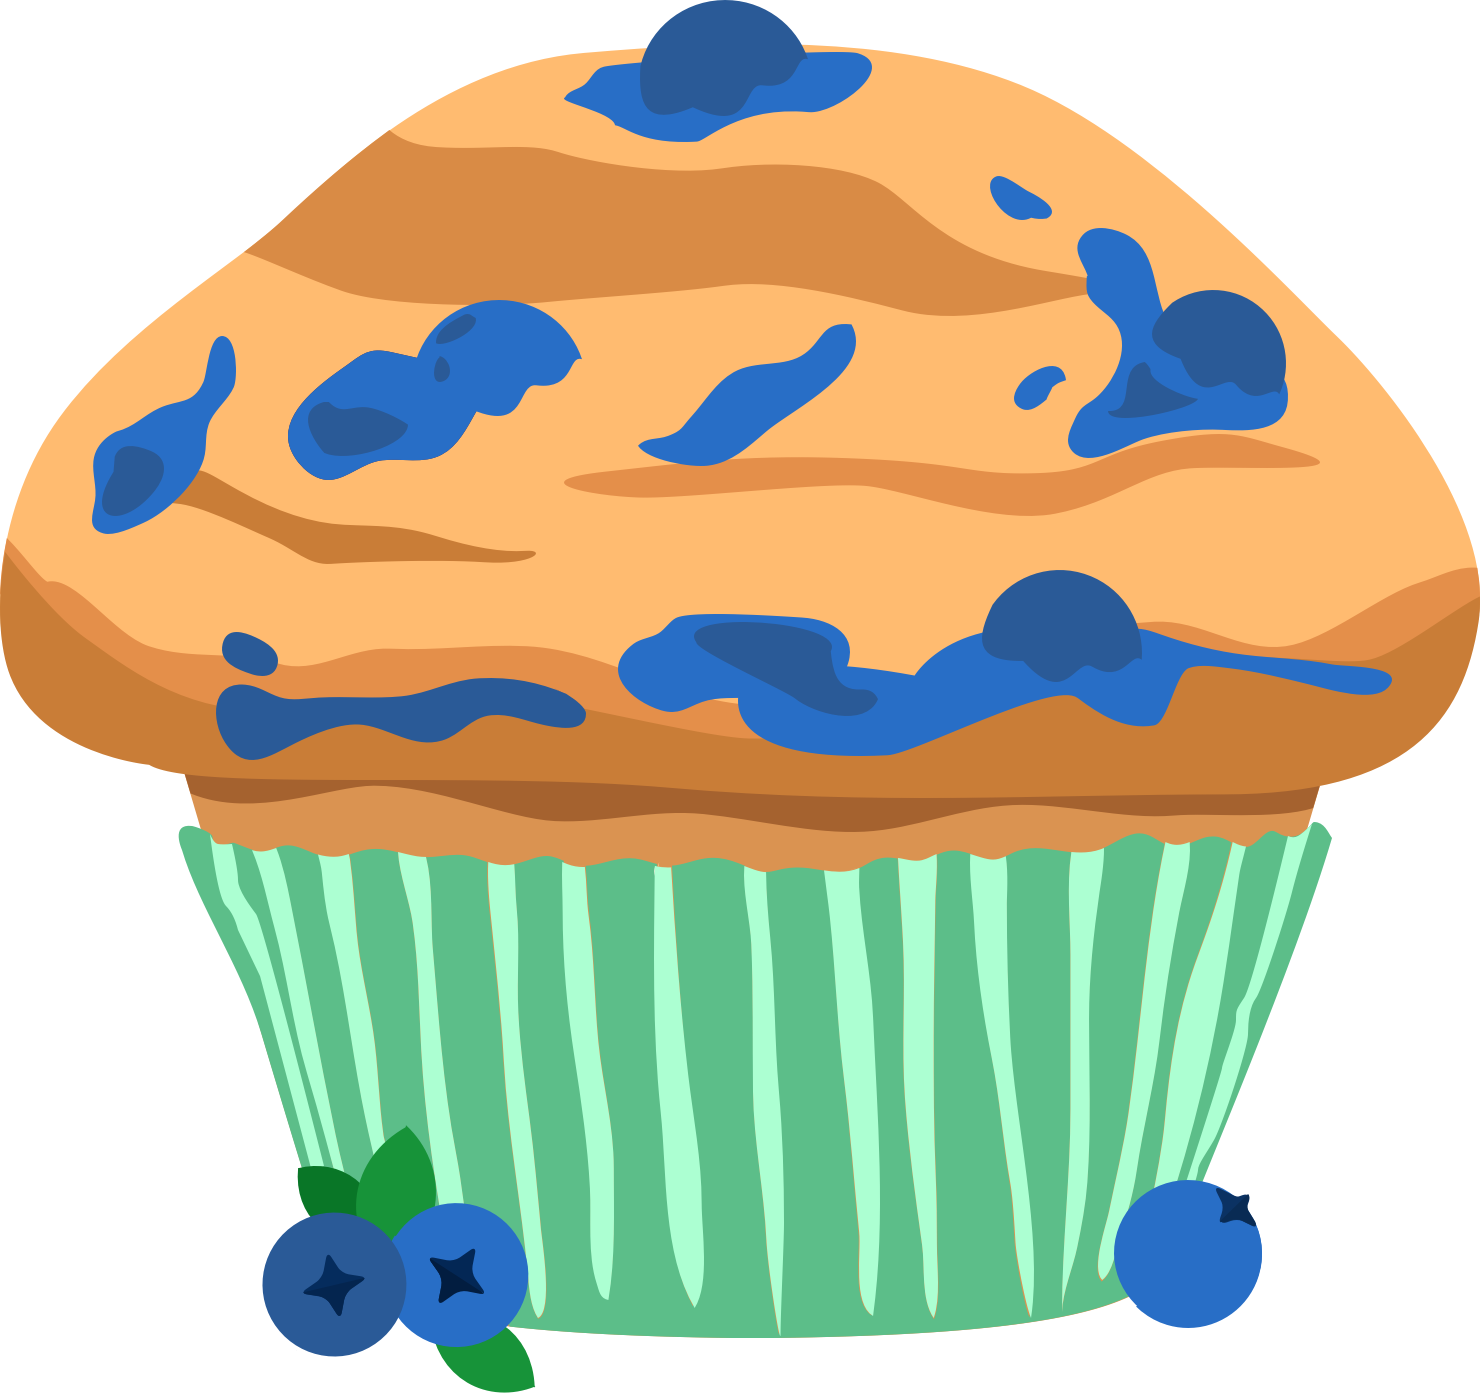 Baking blueberry clip arts. Muffin clipart baked goods png freeuse library